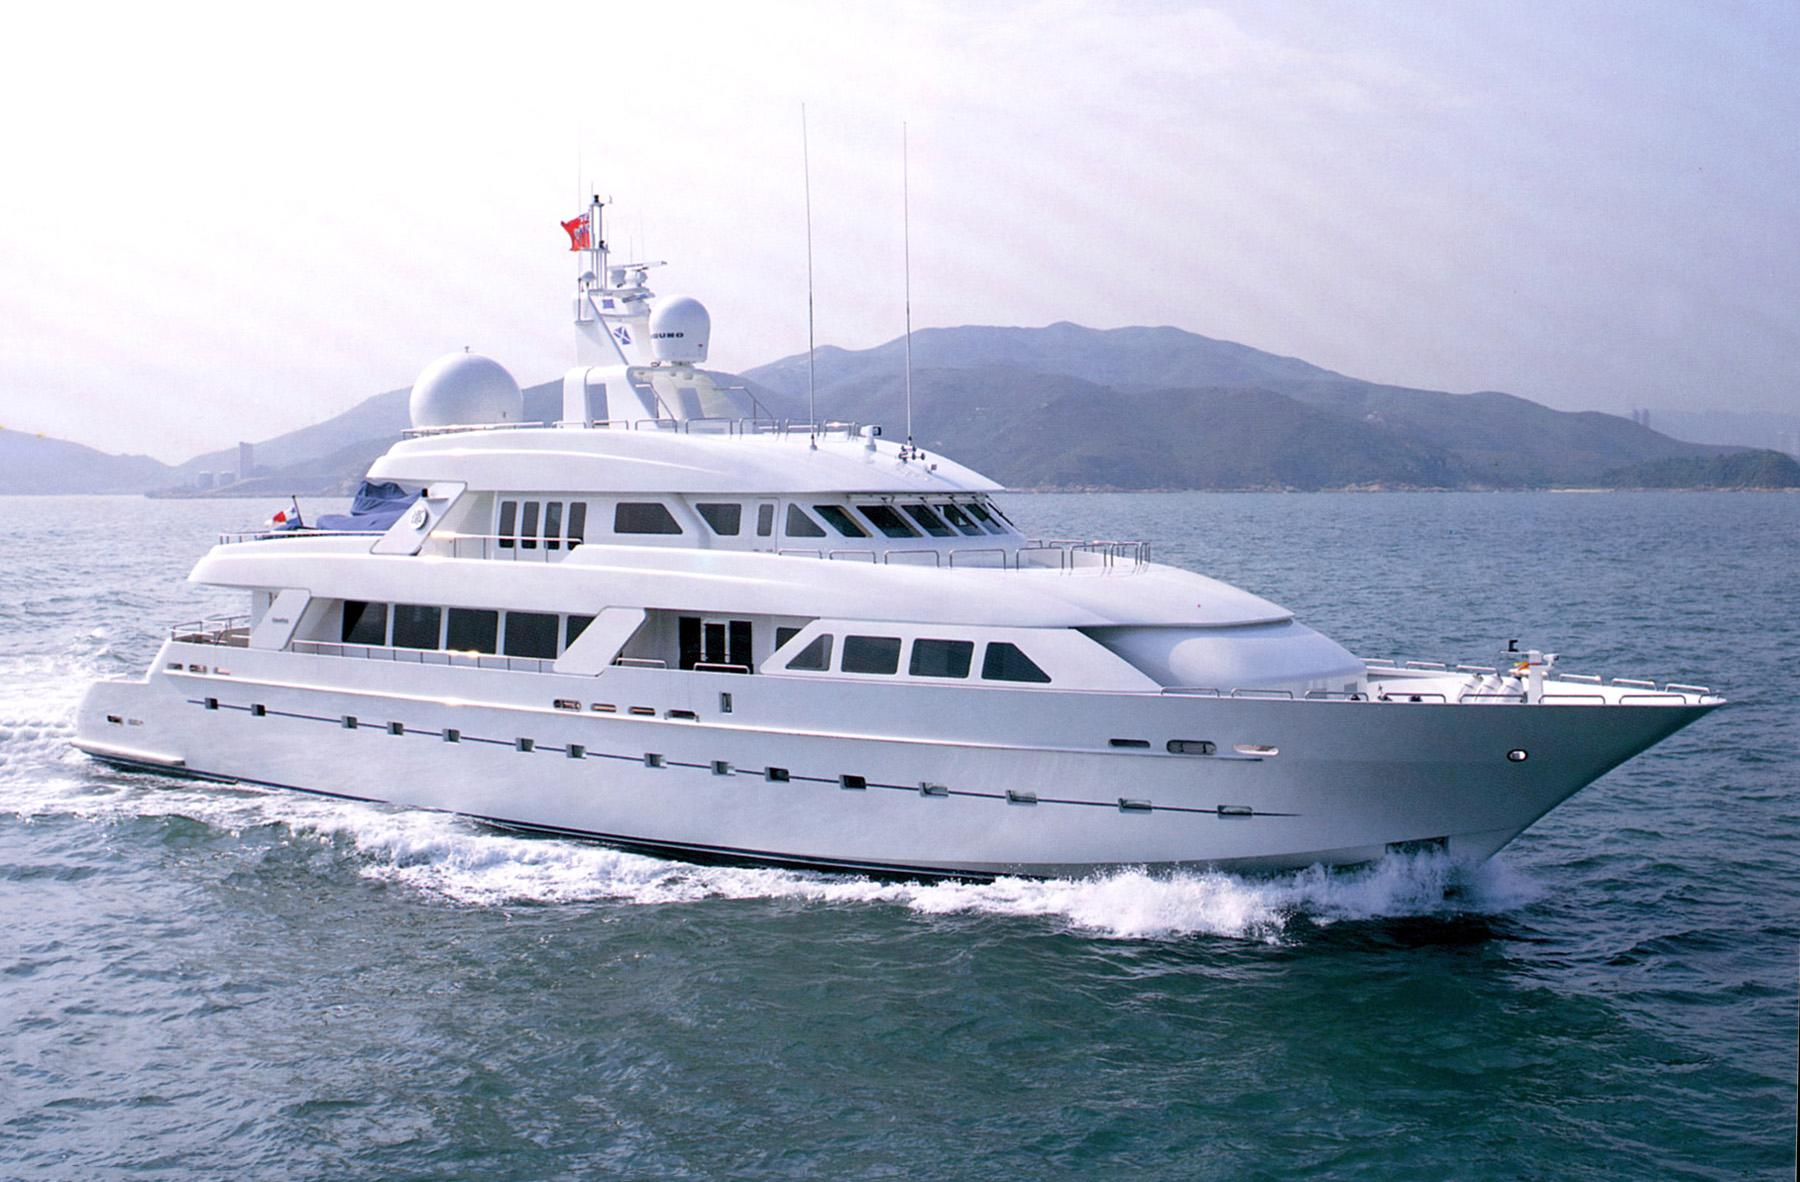 ISLAND HEIRESS specs with detailed specification and builder summary